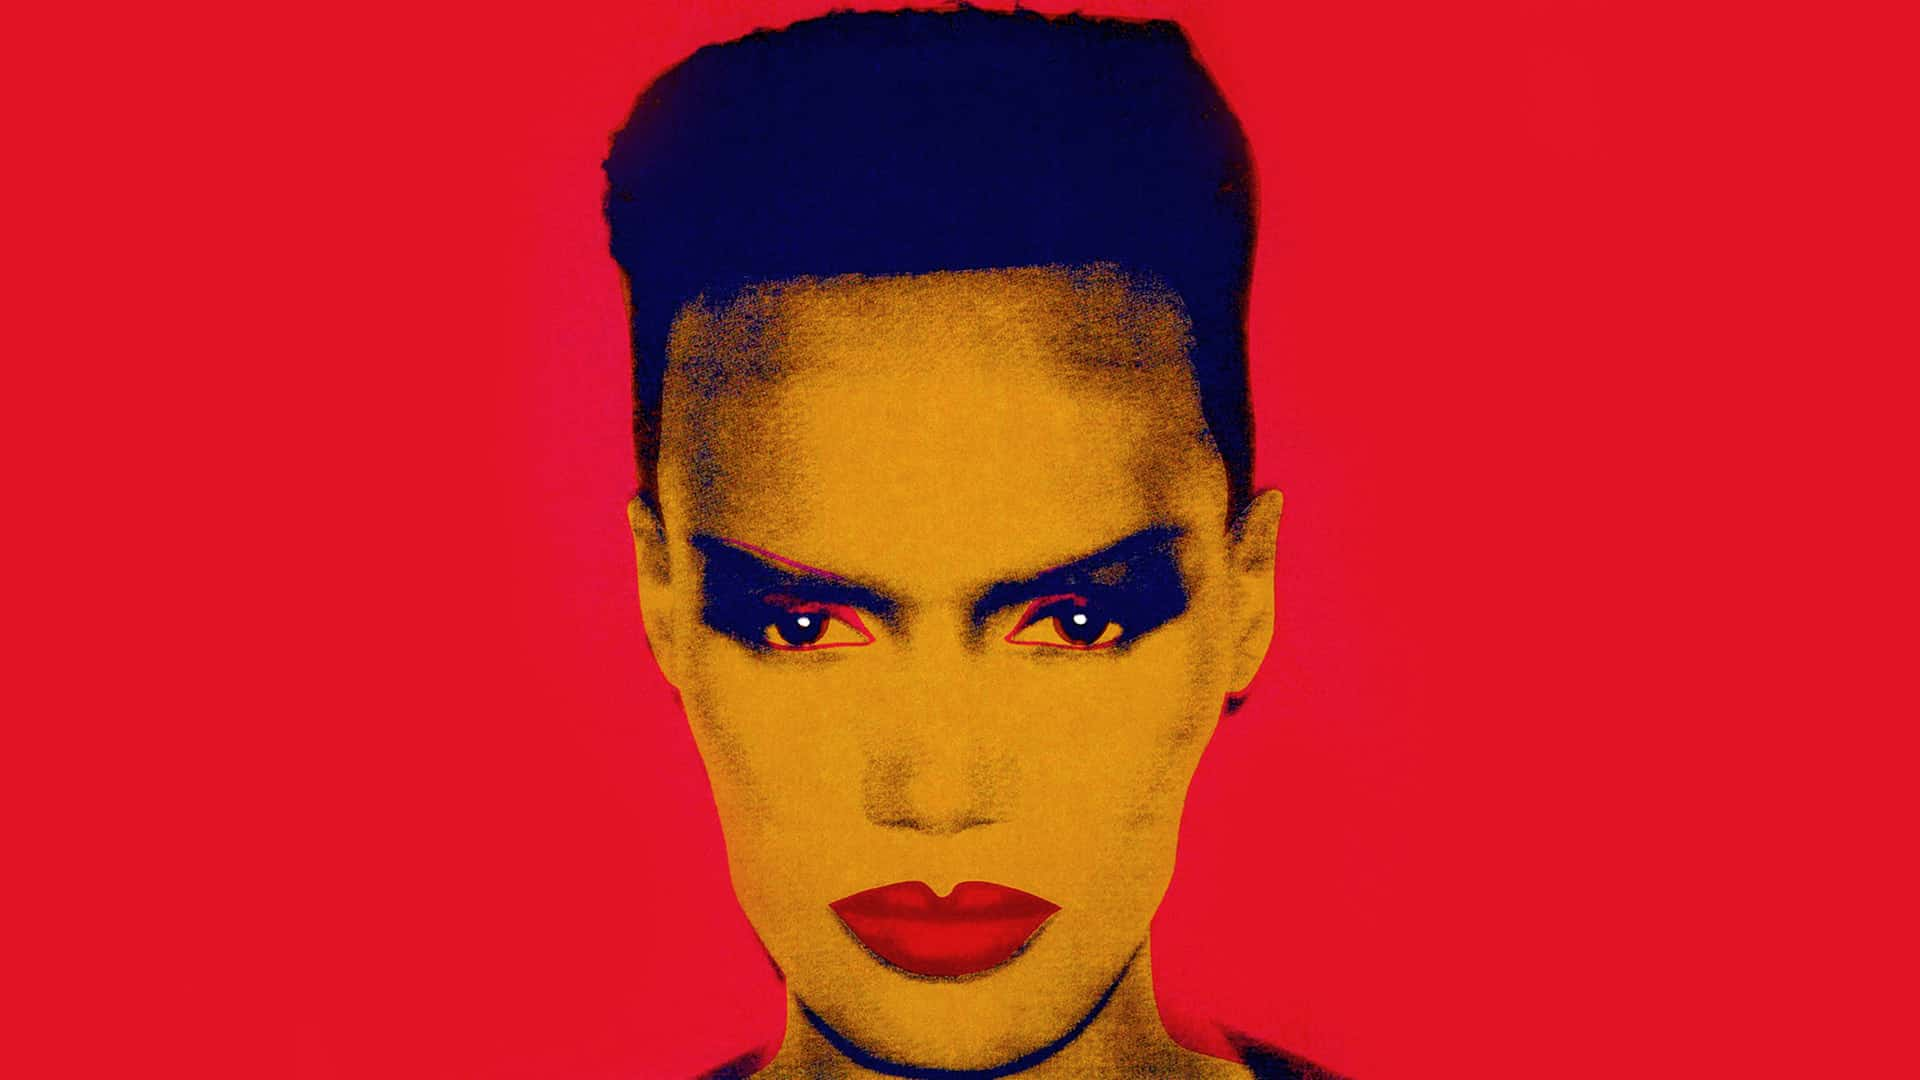 grace jones - nightclubbinggrace jones - strange, grace jones slave to the rhythm, grace jones la vie en rose, grace jones 2016, grace jones 2017, grace jones libertango рингтон, grace jones son, grace jones island life, grace jones corporate cannibal перевод, grace jones скачать, grace jones - nightclubbing, grace jones 2014, grace jones portfolio, grace jones wiki, grace jones hurricane, grace jones discogs, grace jones - private life, grace jones mp3, grace jones астор пьяццолла, grace jones living my life